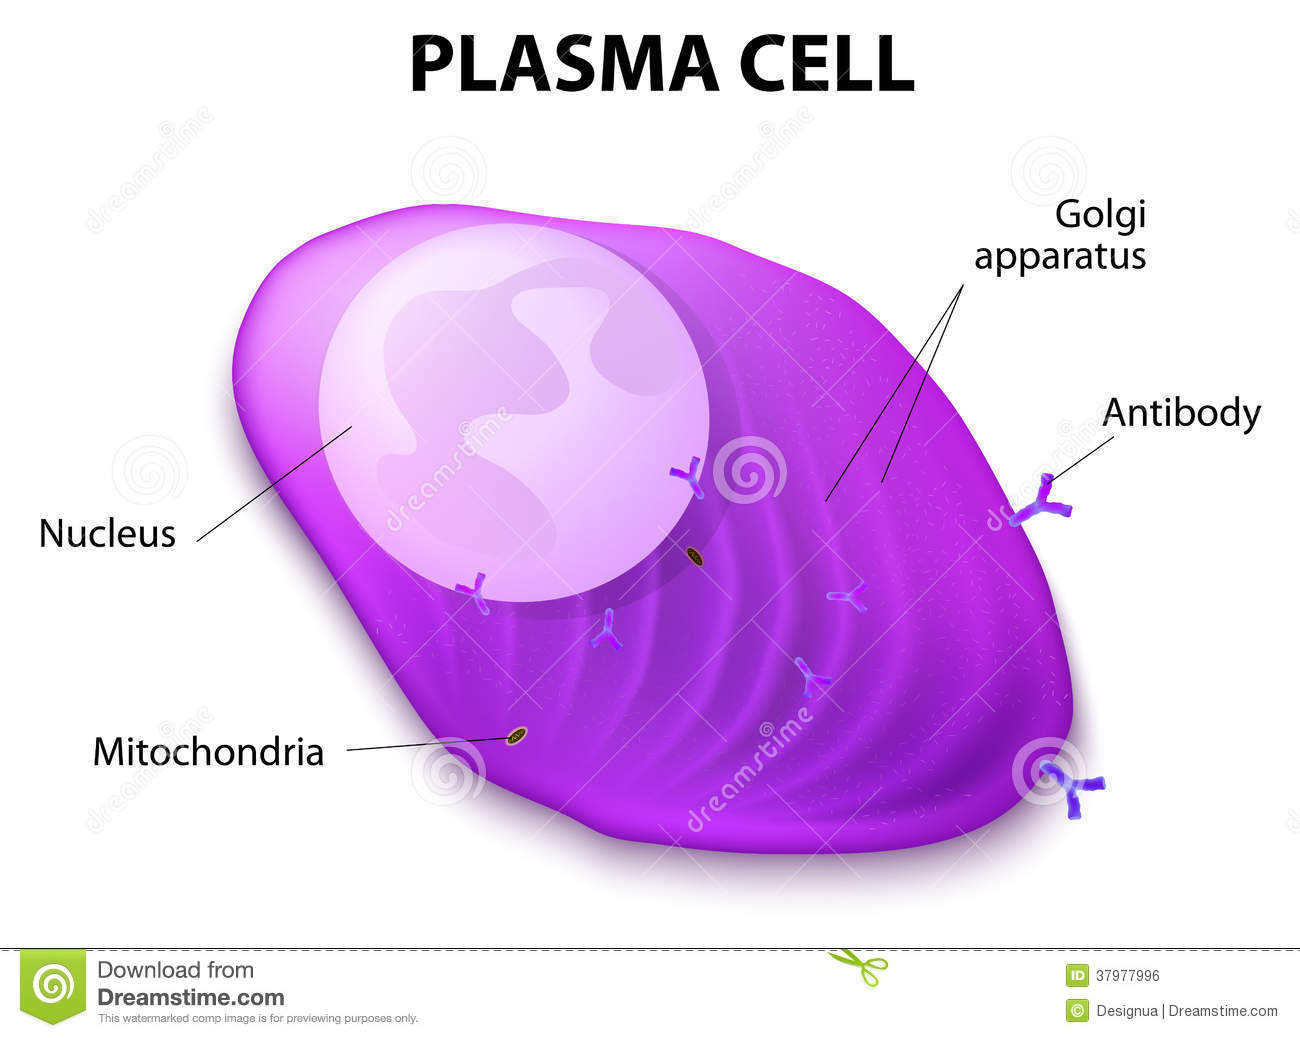 hight resolution of structure of the plasma cell stock vector illustration of plasm comic diagram of plasm